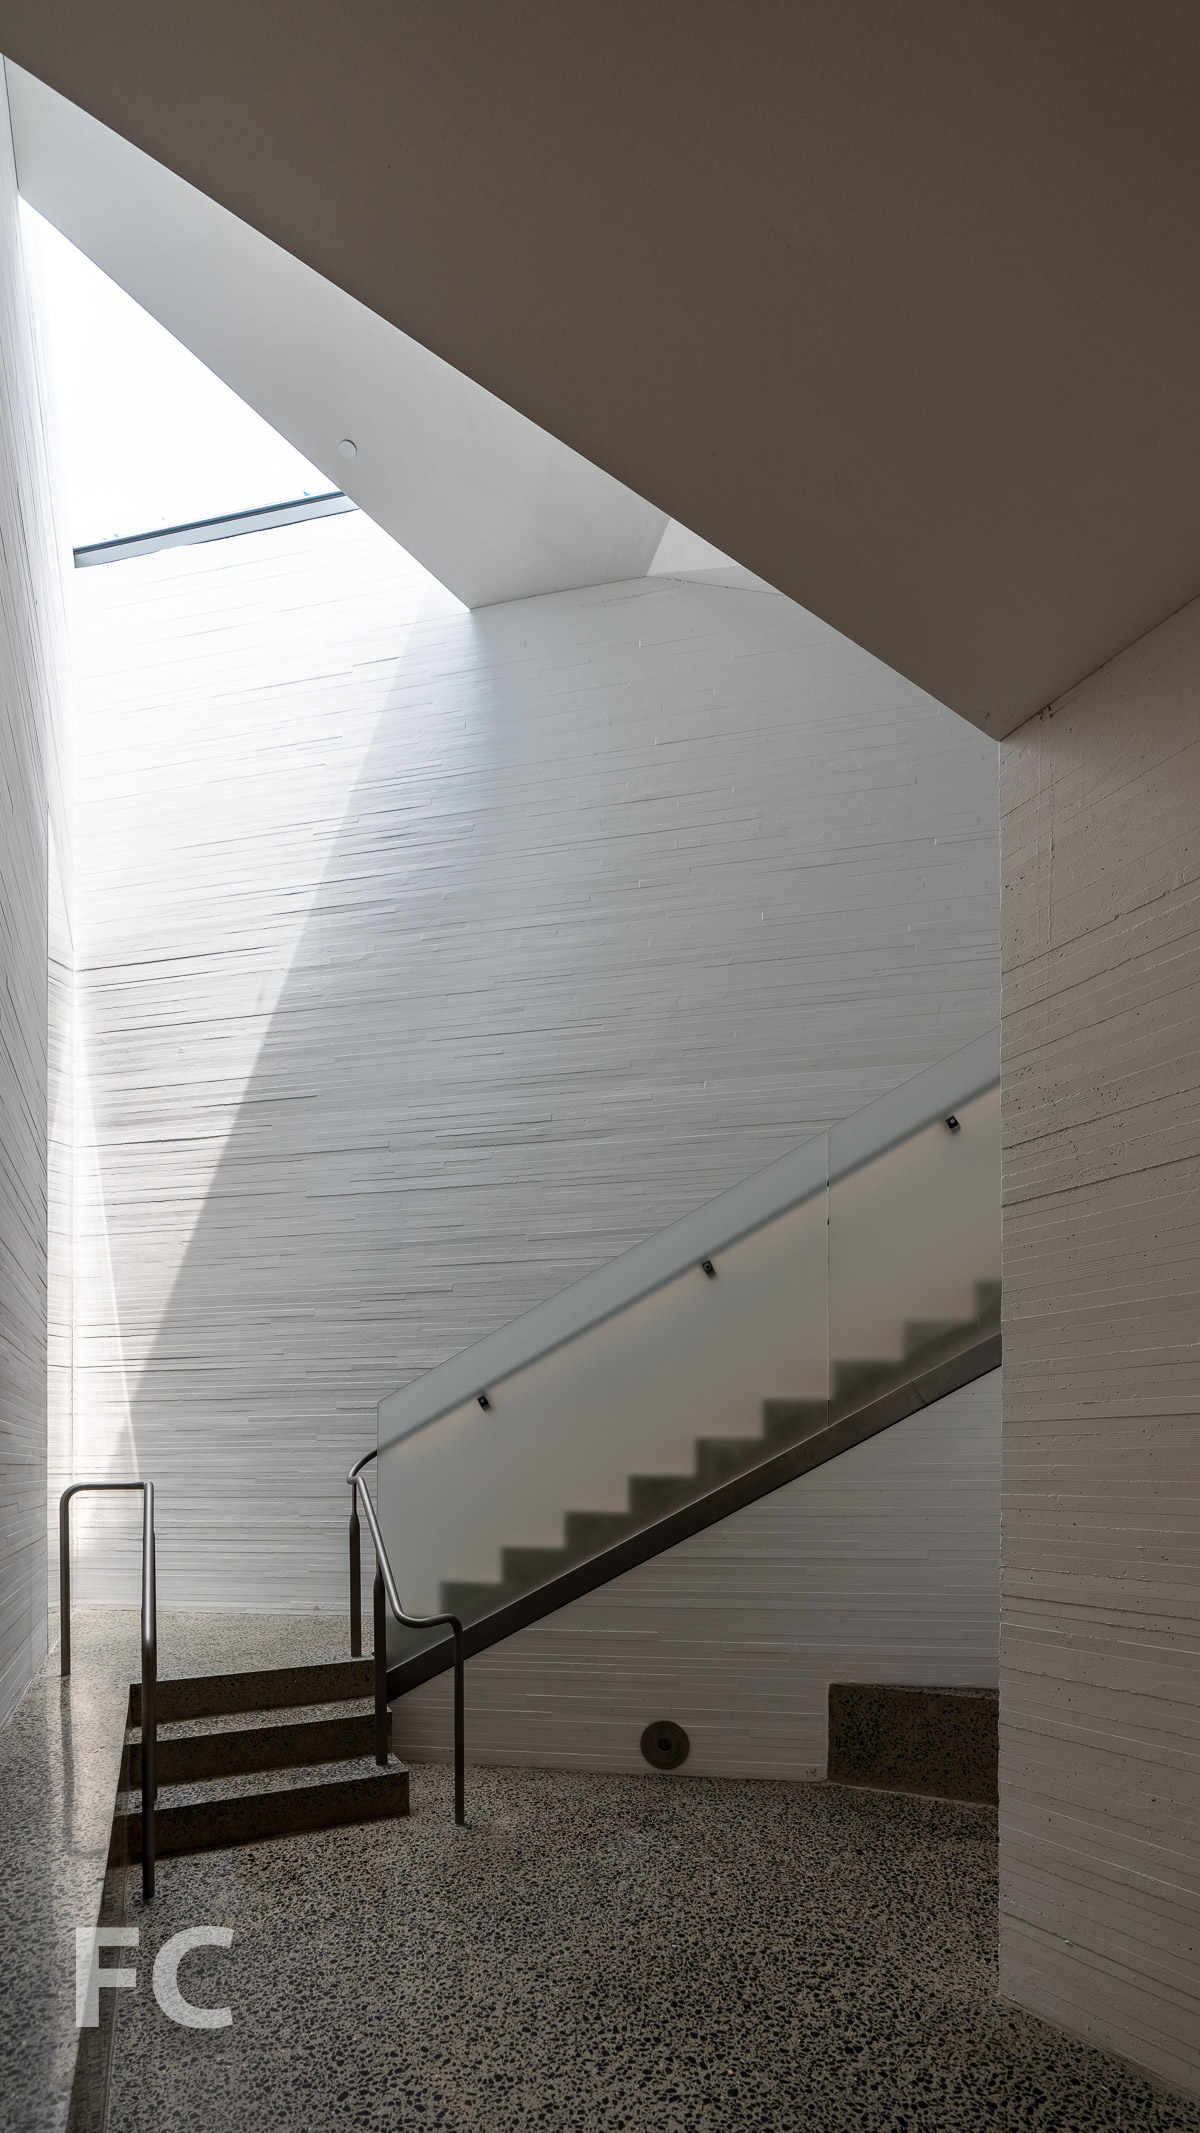 20190518-The Reach at the Kennedy Center-DSC04693-HDR.jpg